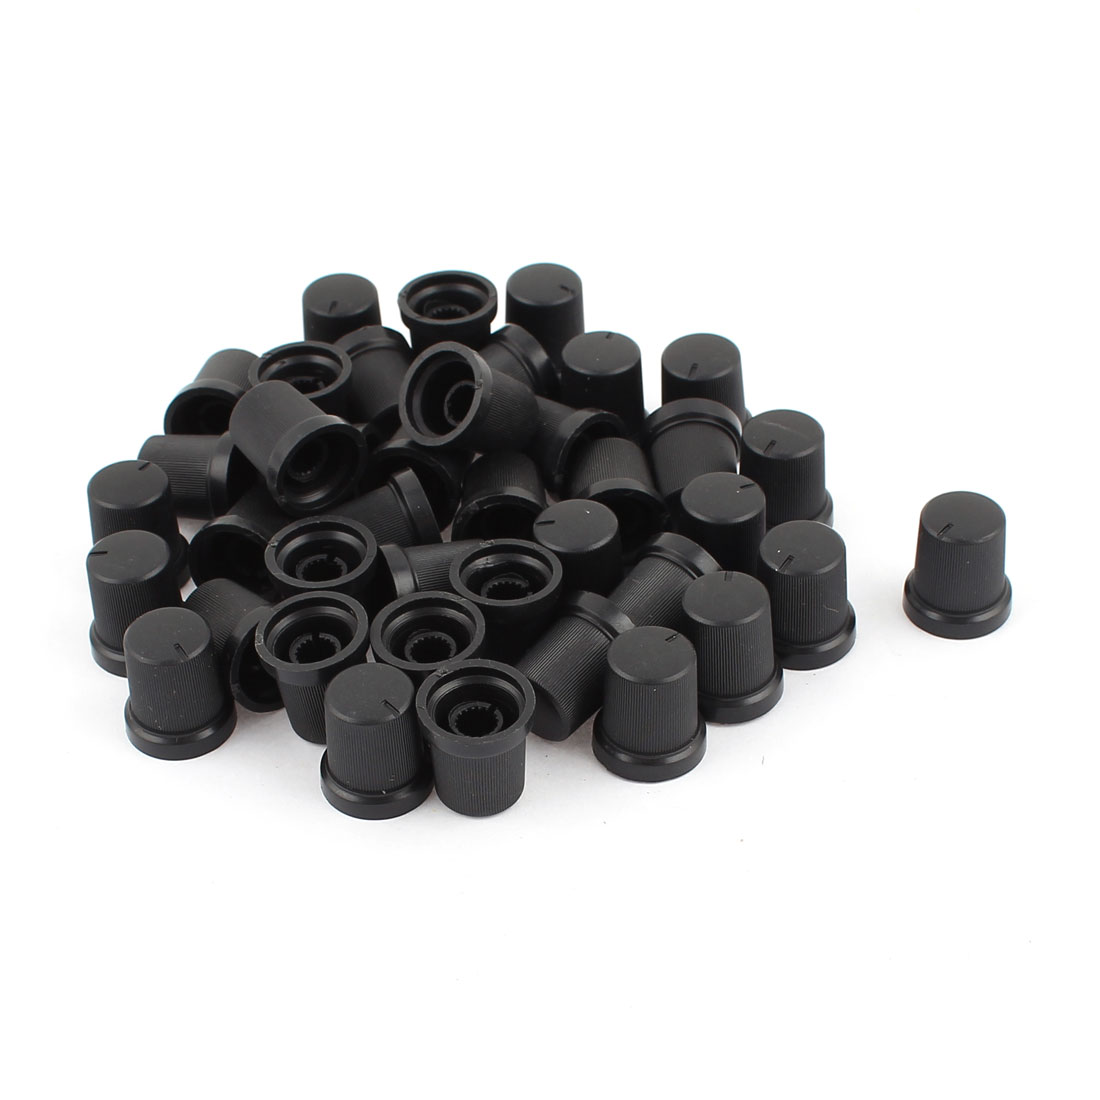 40pcs 6mm Knurled Dia Black Roatory Potentiometer Knob